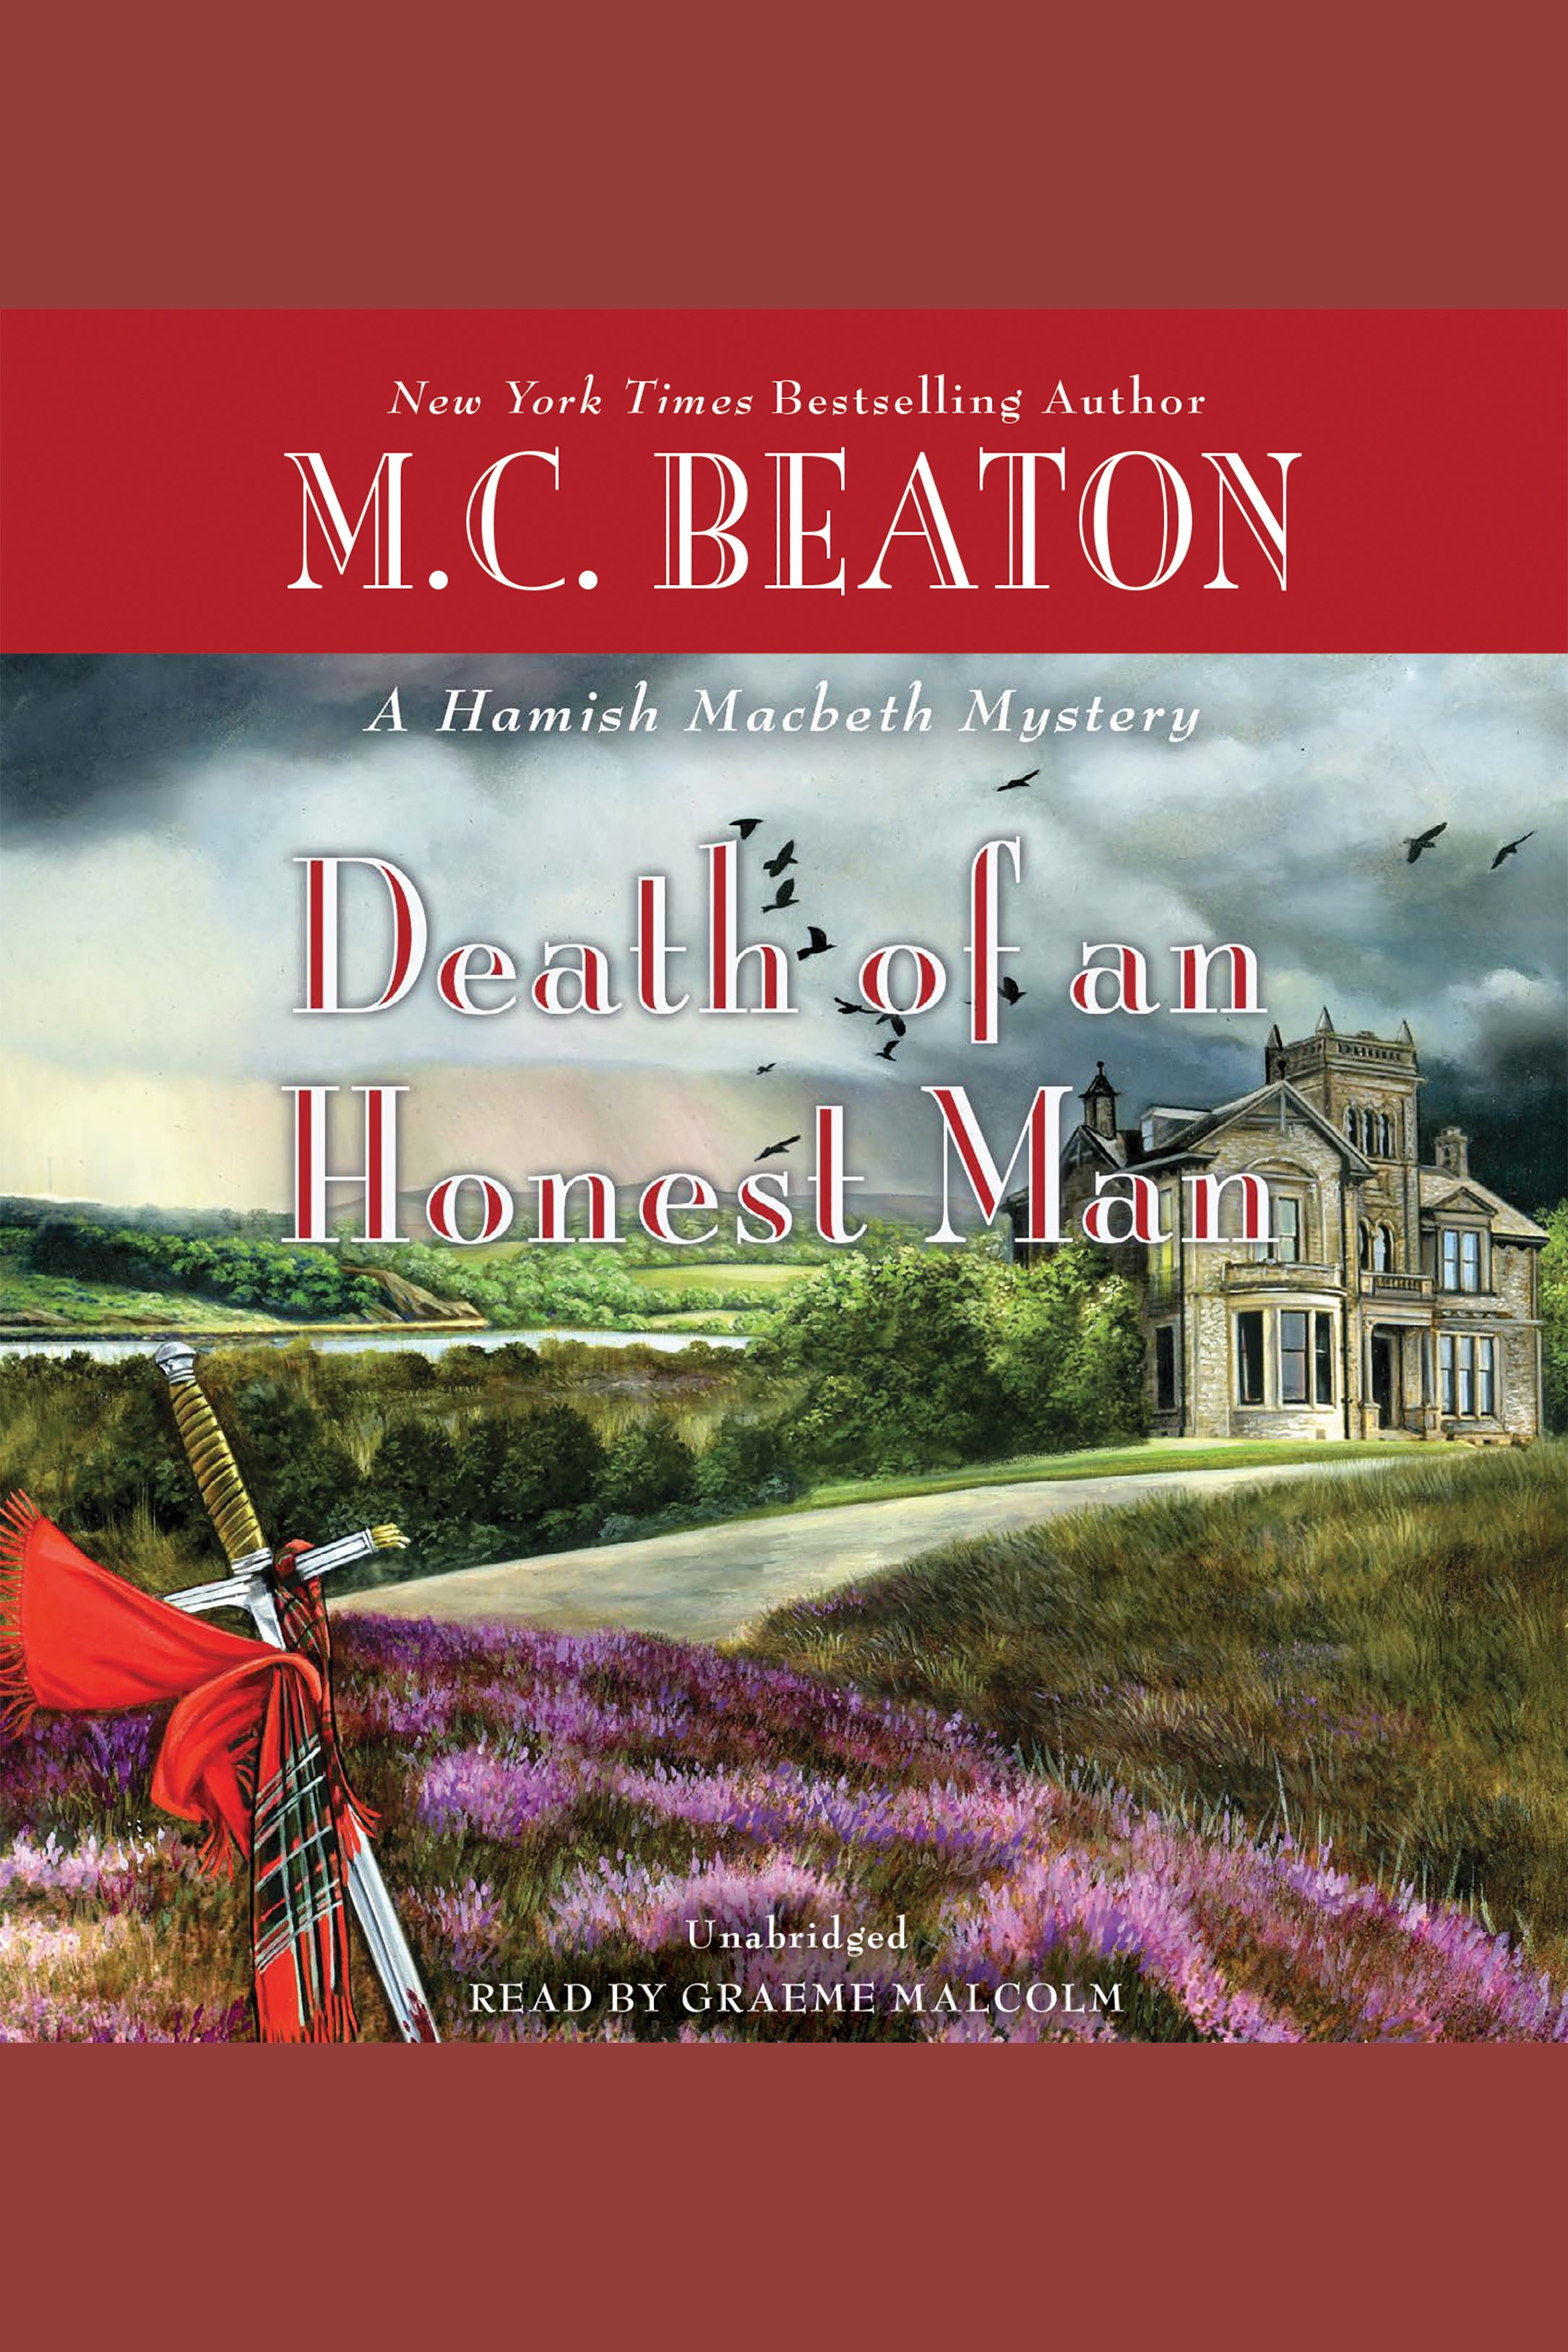 Death of an honest man cover image